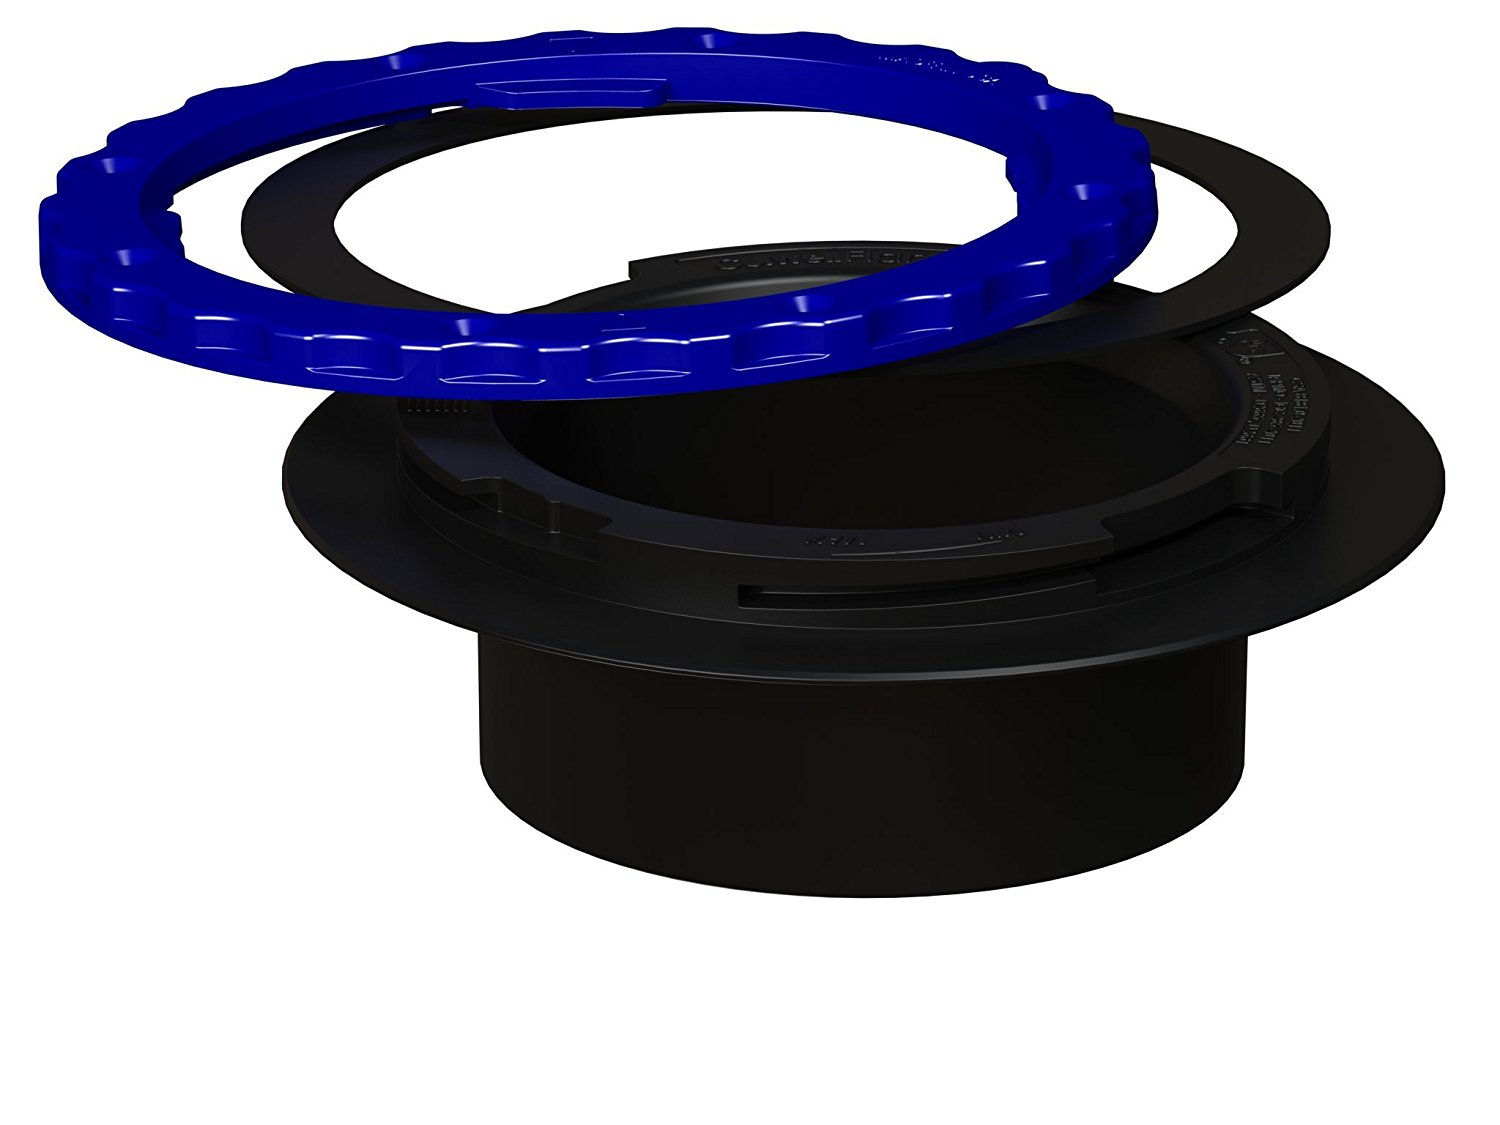 Culwell A4 Premium Property Saving Toilet Flange with ABS Surface Seal Glue-in and Black/Blue Ring, 4-Inch